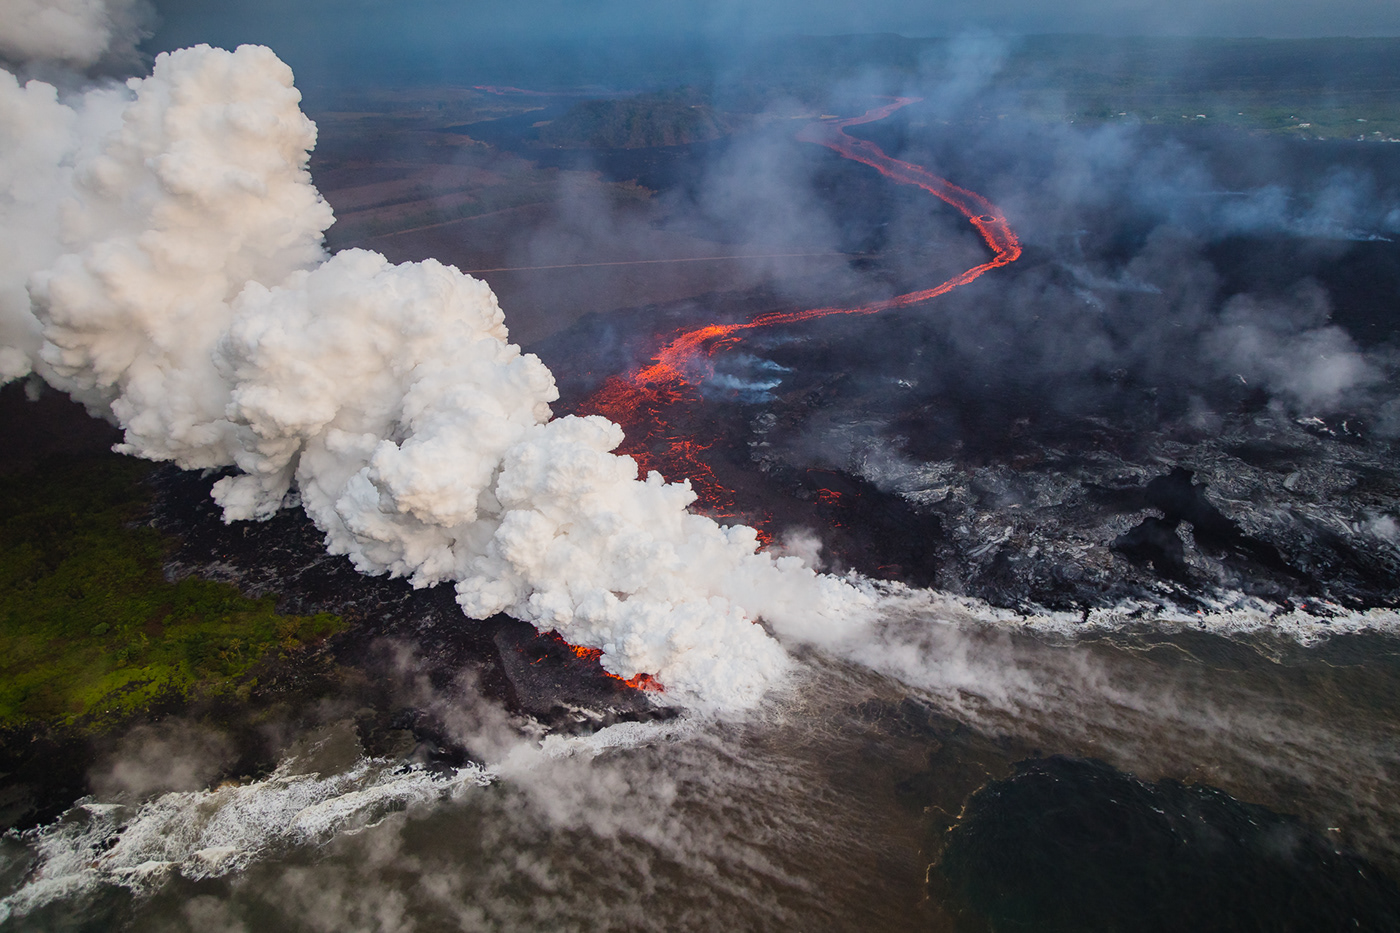 5ds r,Aerial,big island,Canon,disaster,HAWAII,helicopter,volcano,lava